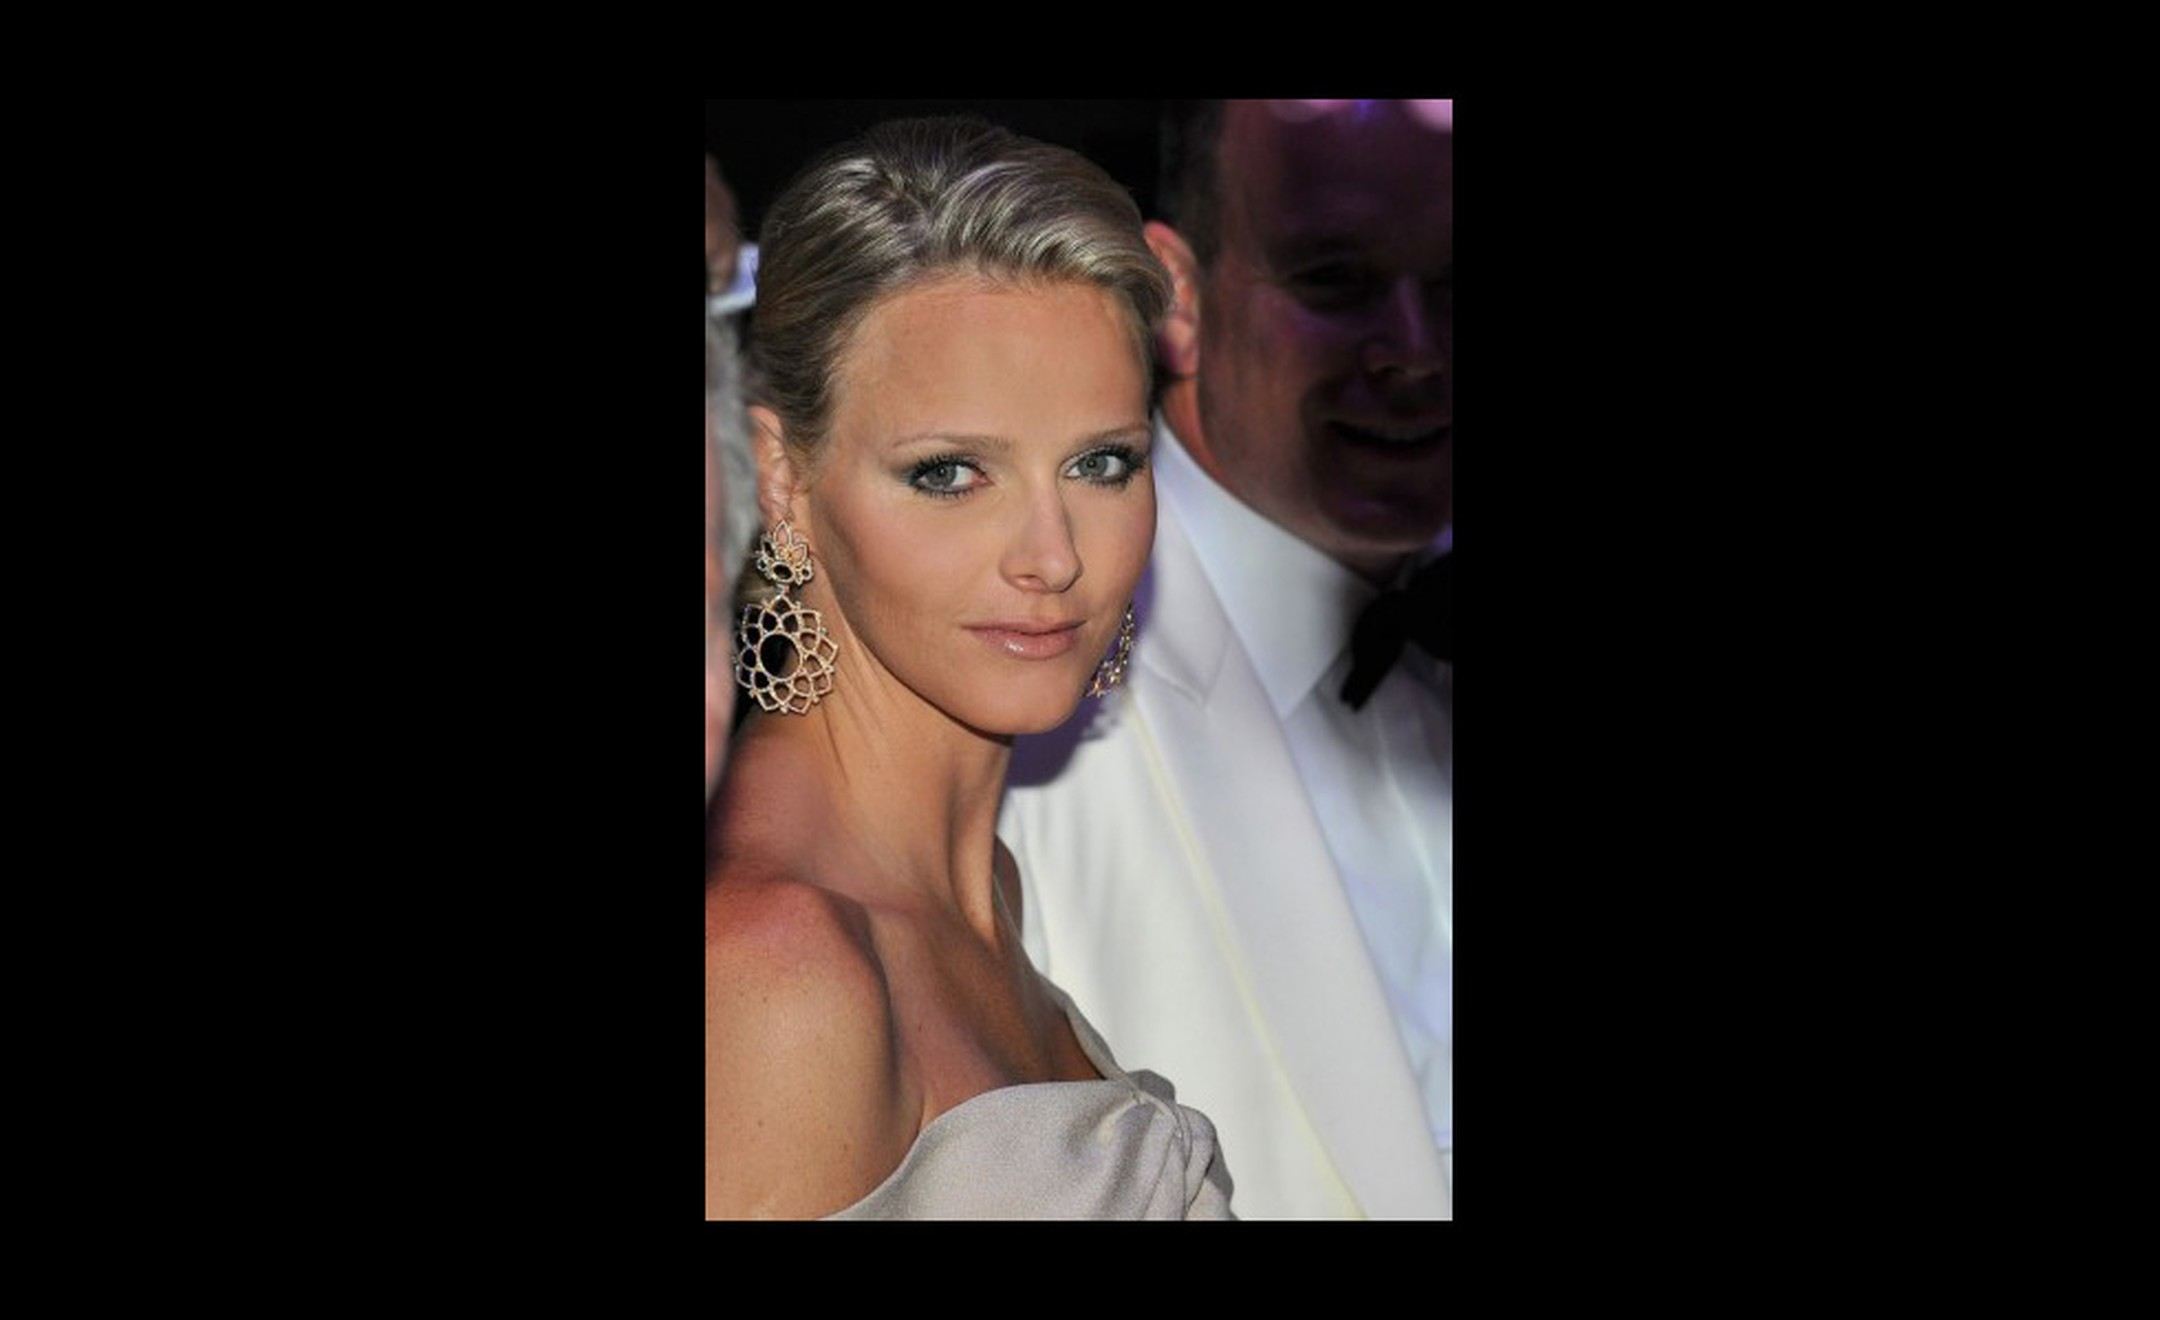 Big earring statement from Charlene Wittstock. I like the way she wears just the earrings and avoids the Christmas tree look. Photo: Prince's Palace of Monaco